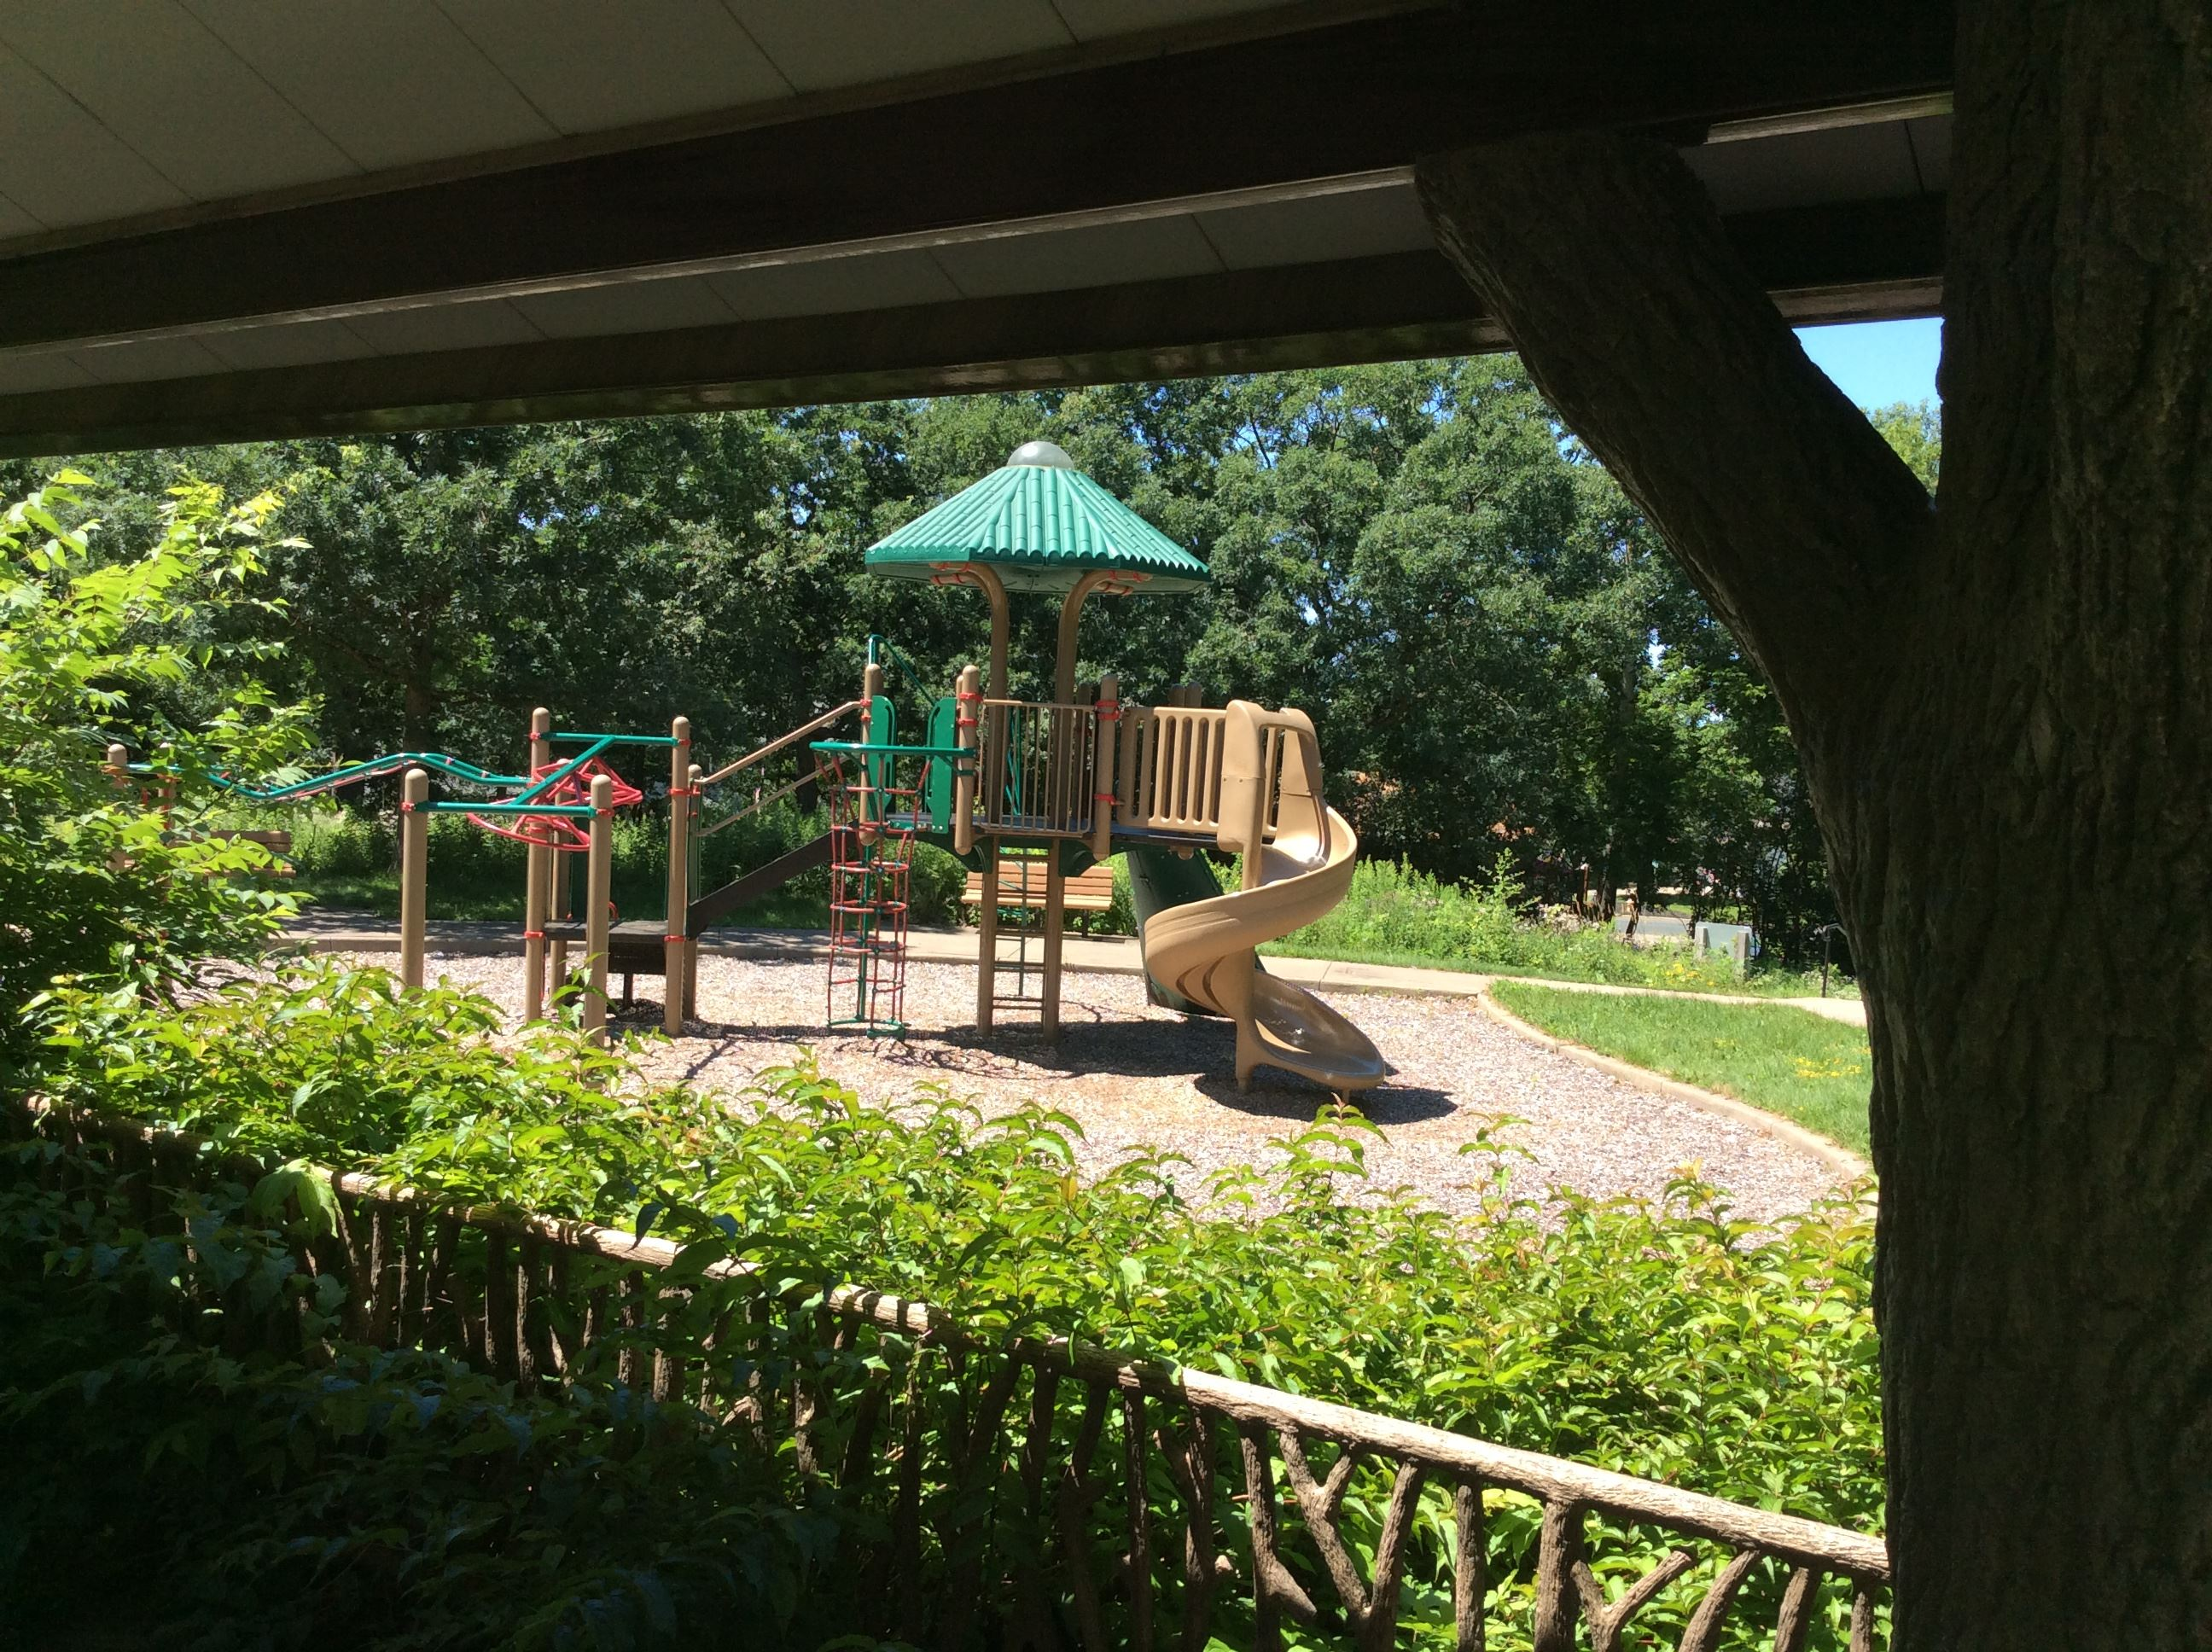 Applewood Playground